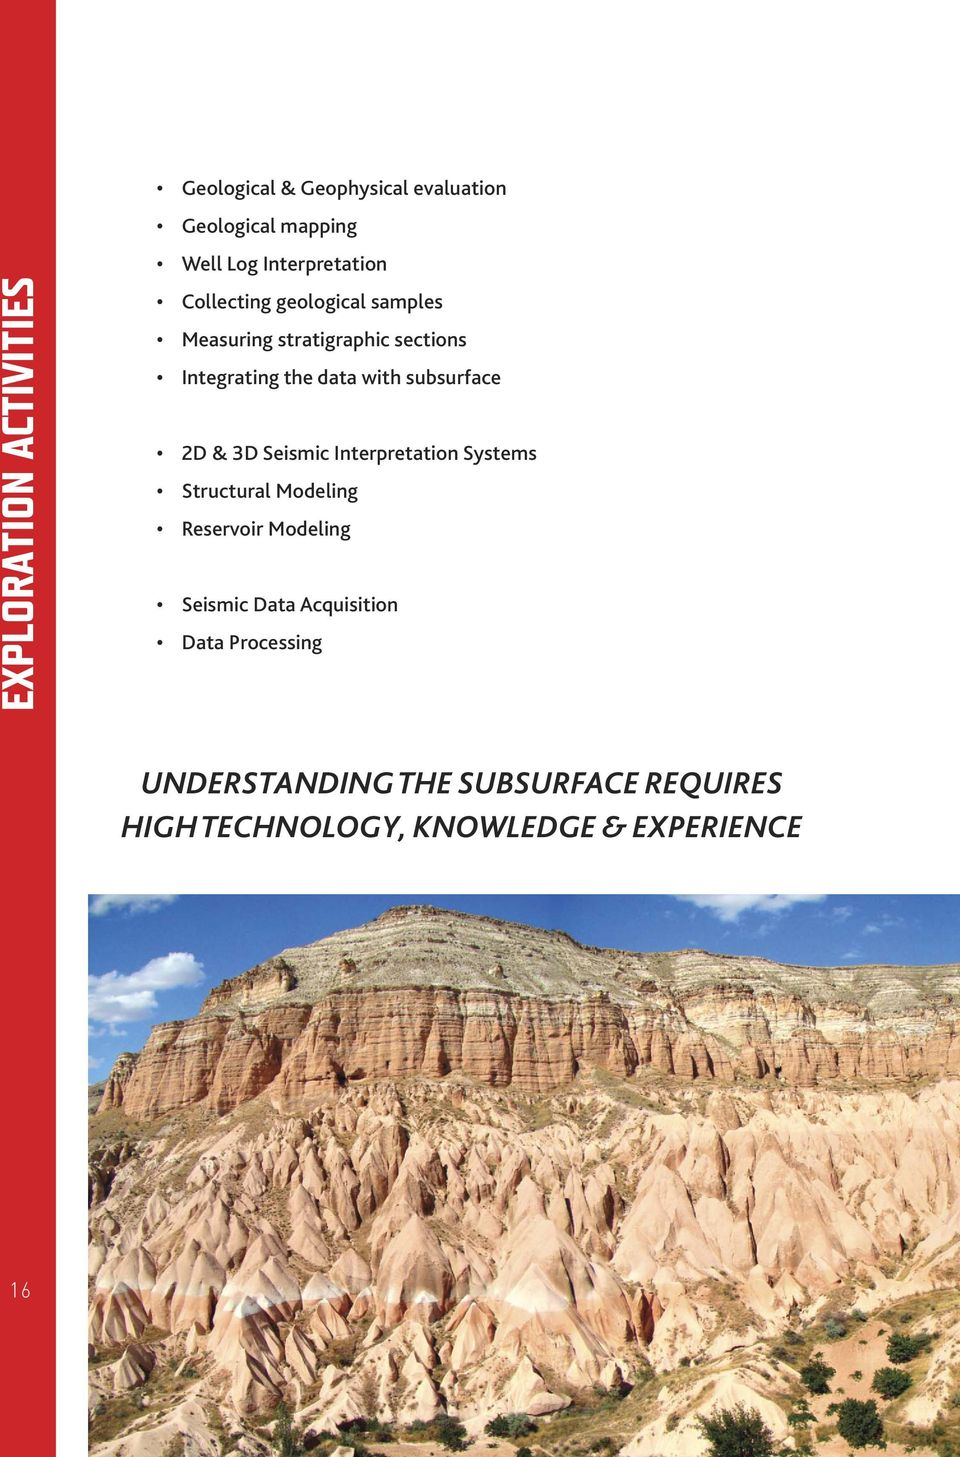 with subsurface 2D & 3D Seismic Interpretation Systems Structural Modeling Reservoir Modeling